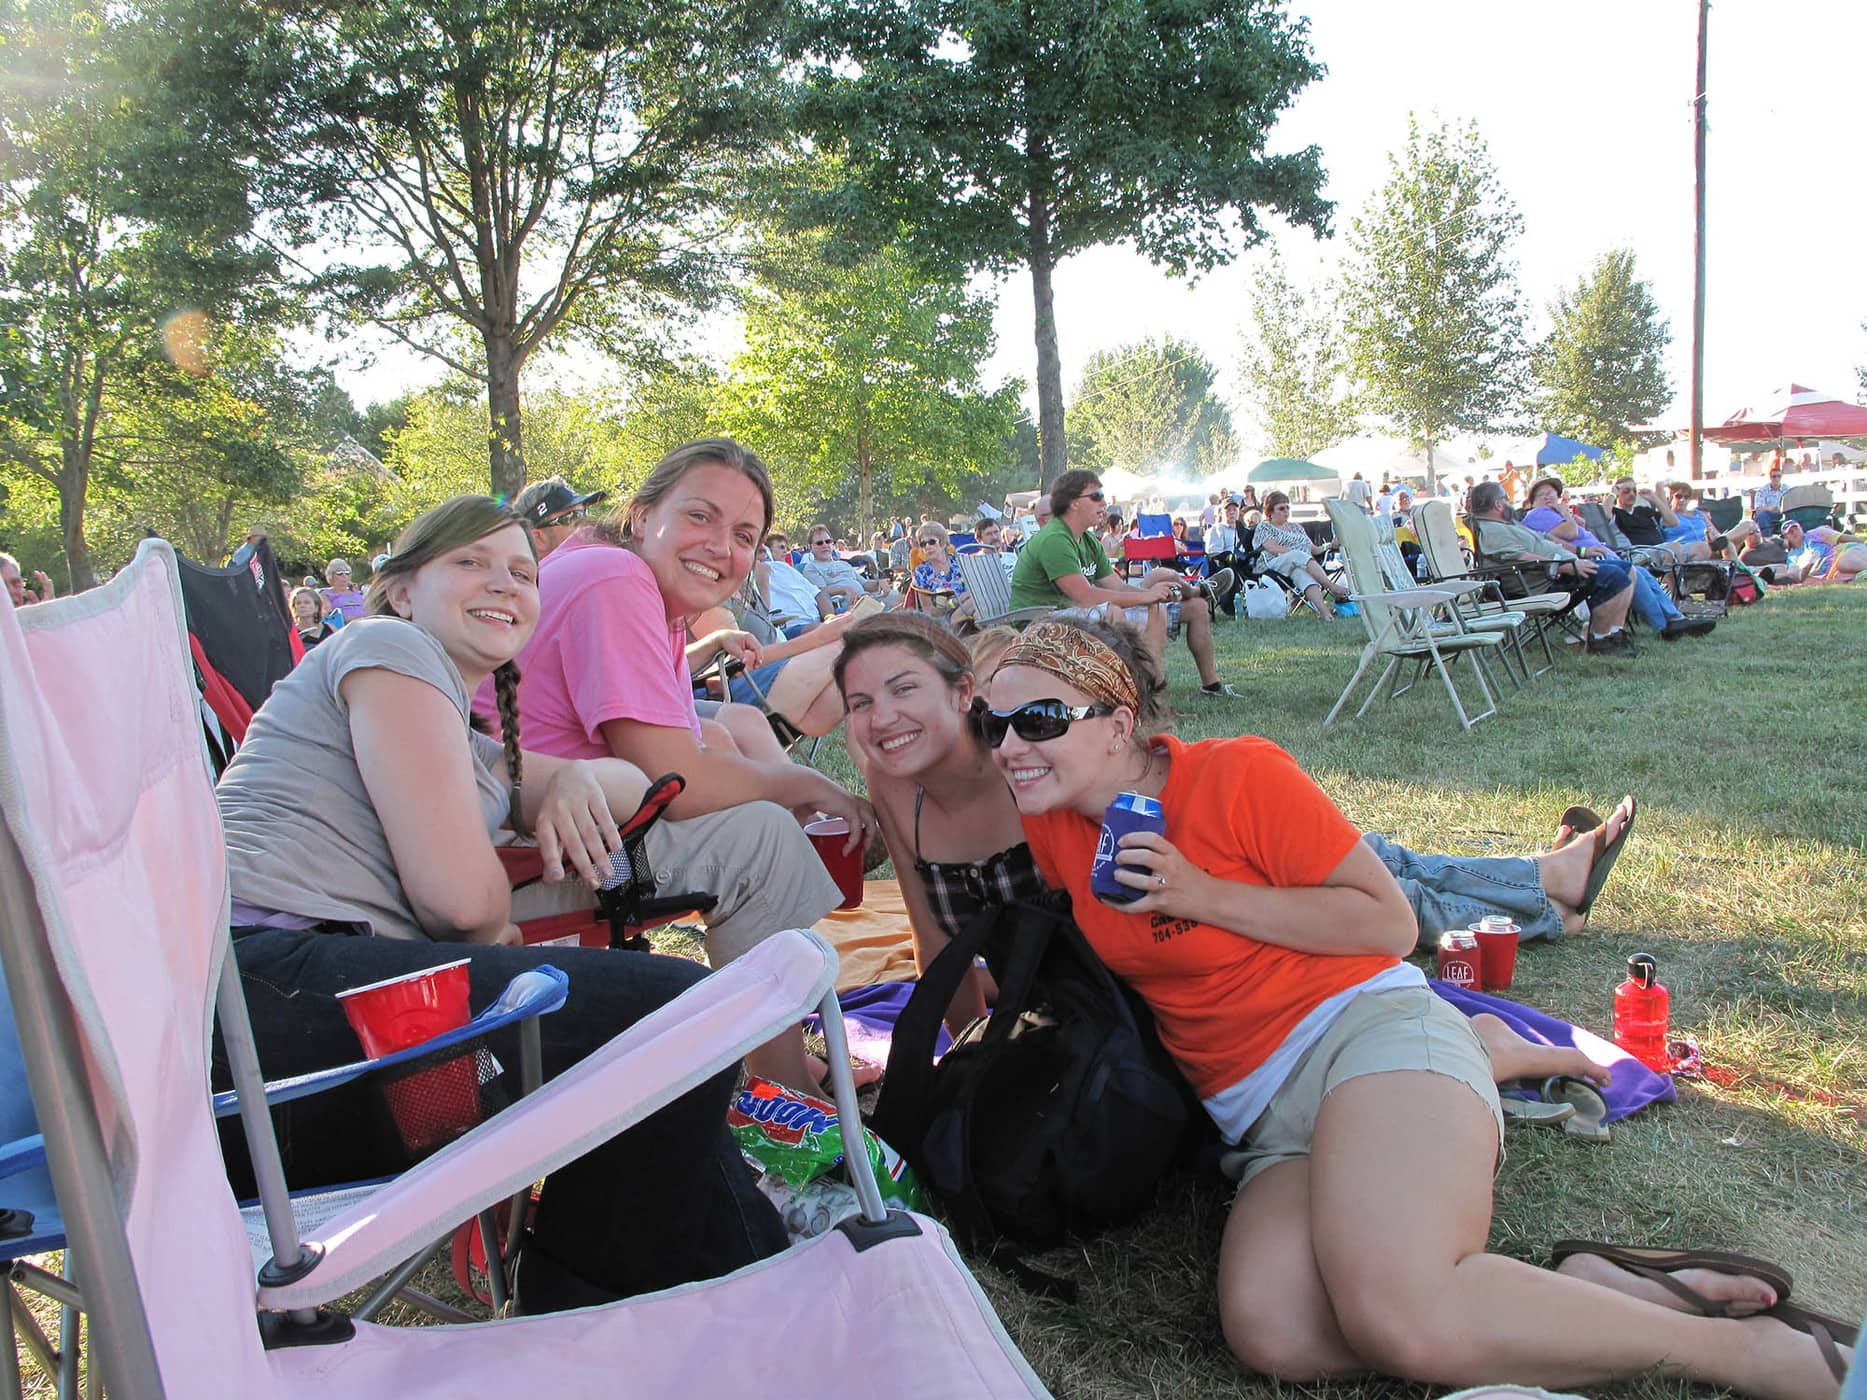 RedBone Willy's Bluegrass and Acoustic Music Festival - Me, Jamie, Carrie, and Sadie